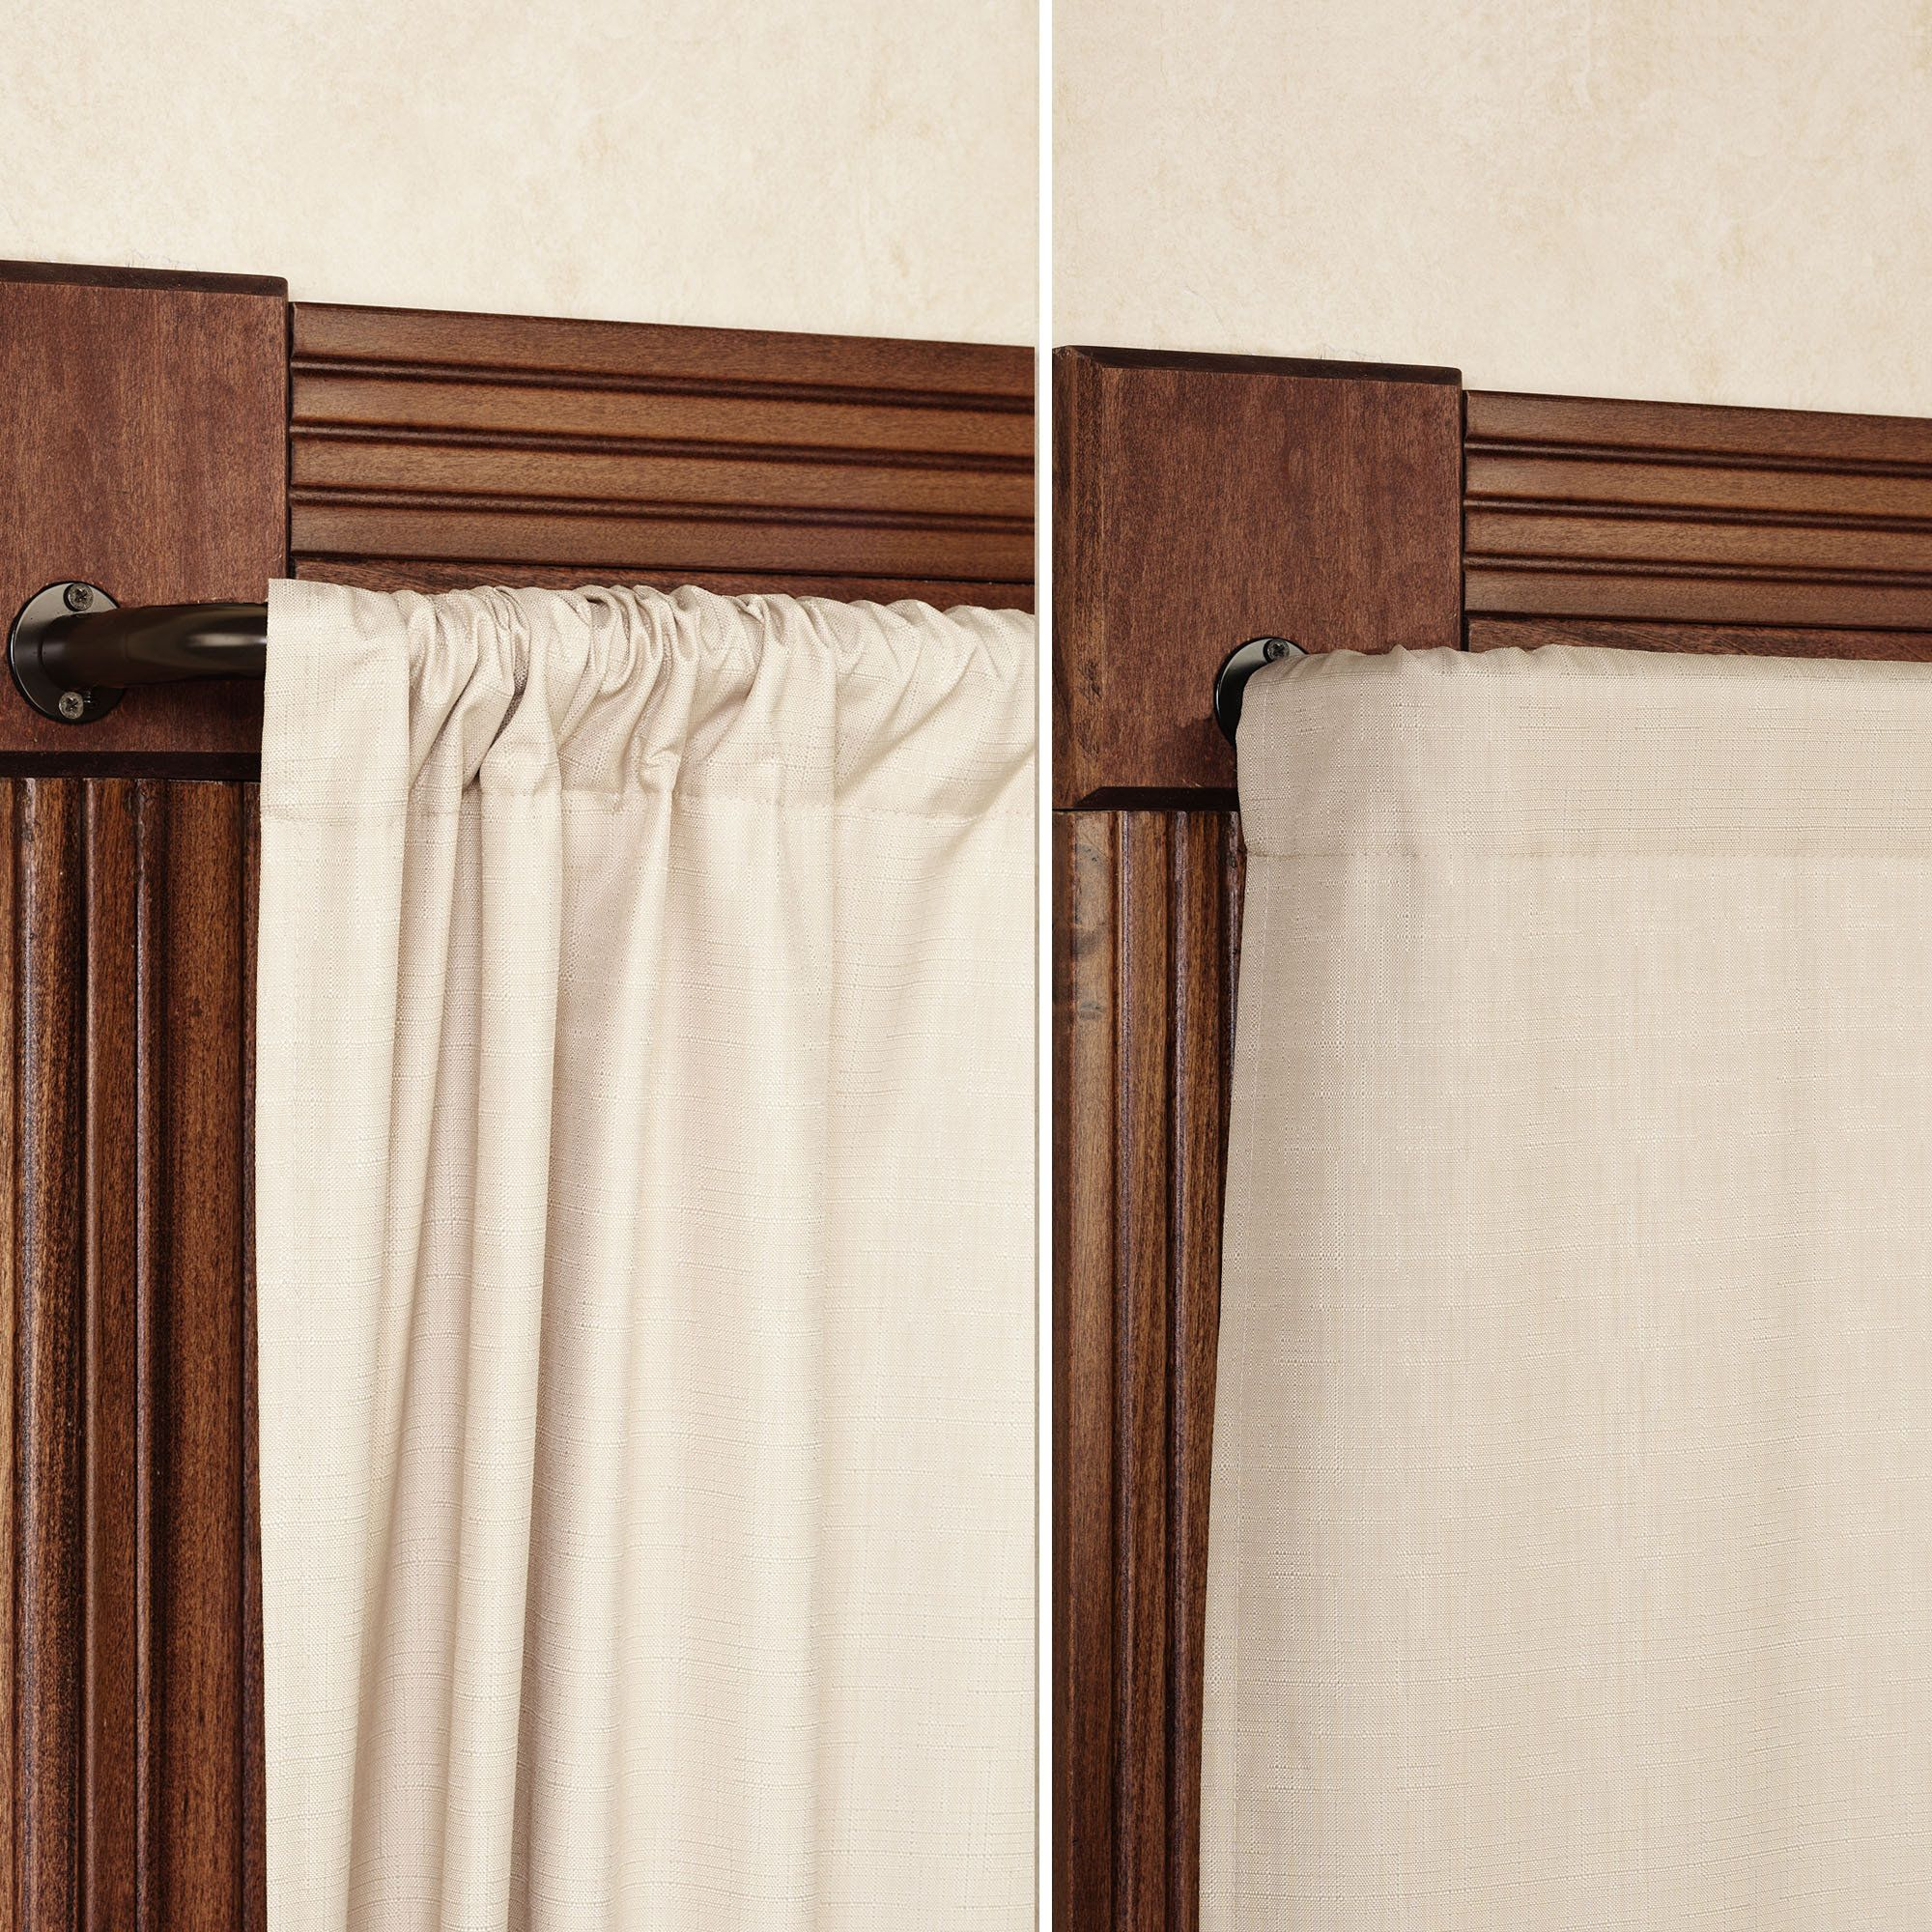 Blockaide Wrap Around Curtain Rod Wrap Around Curtain Rod Curtains Curtain Rods